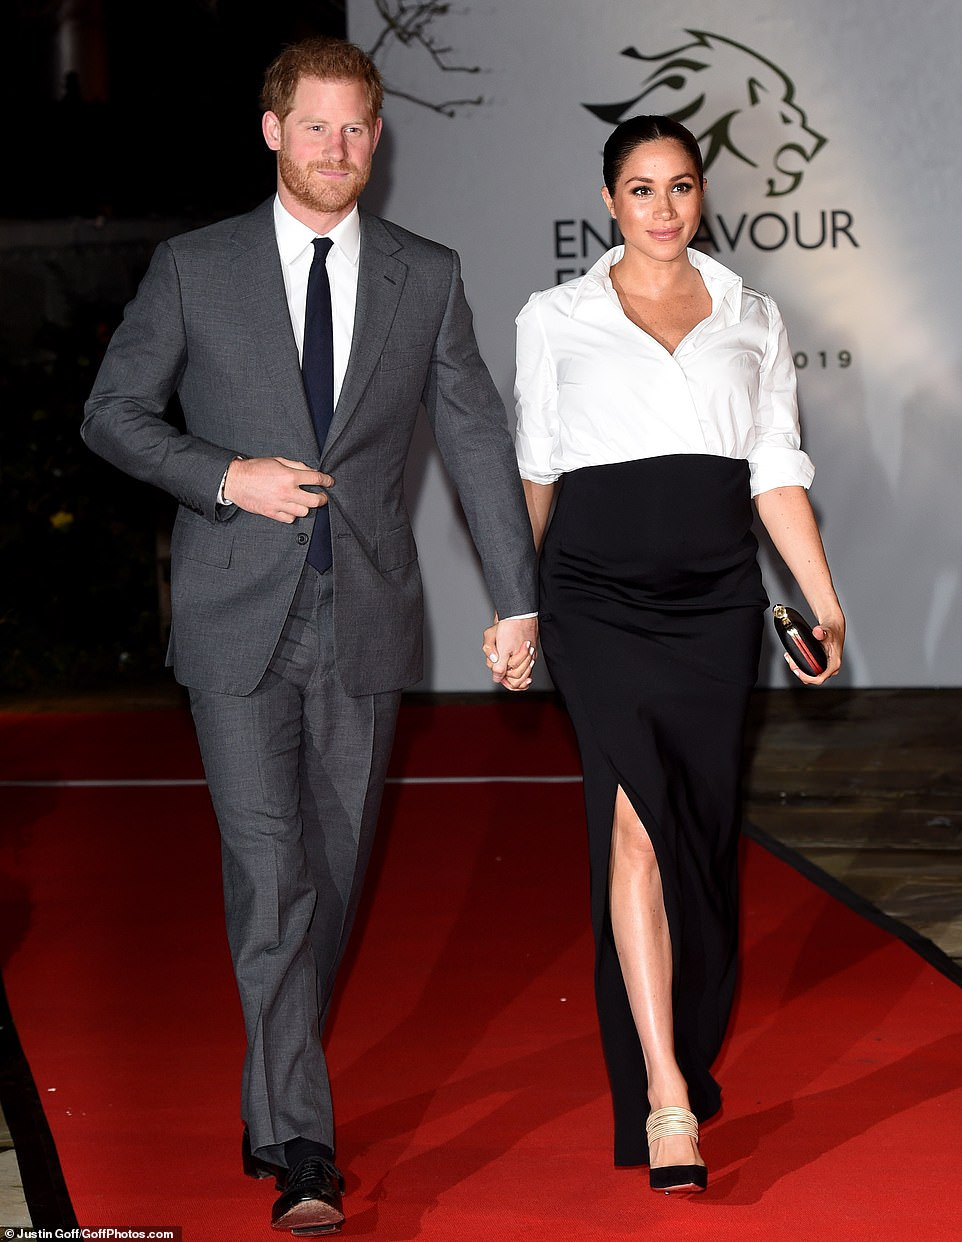 Royal return: The visit marks the first time Meghan has been in the Big Apple since she said 'I do' to Prince Harry in May 2018. The couple is expecting their first child this spring